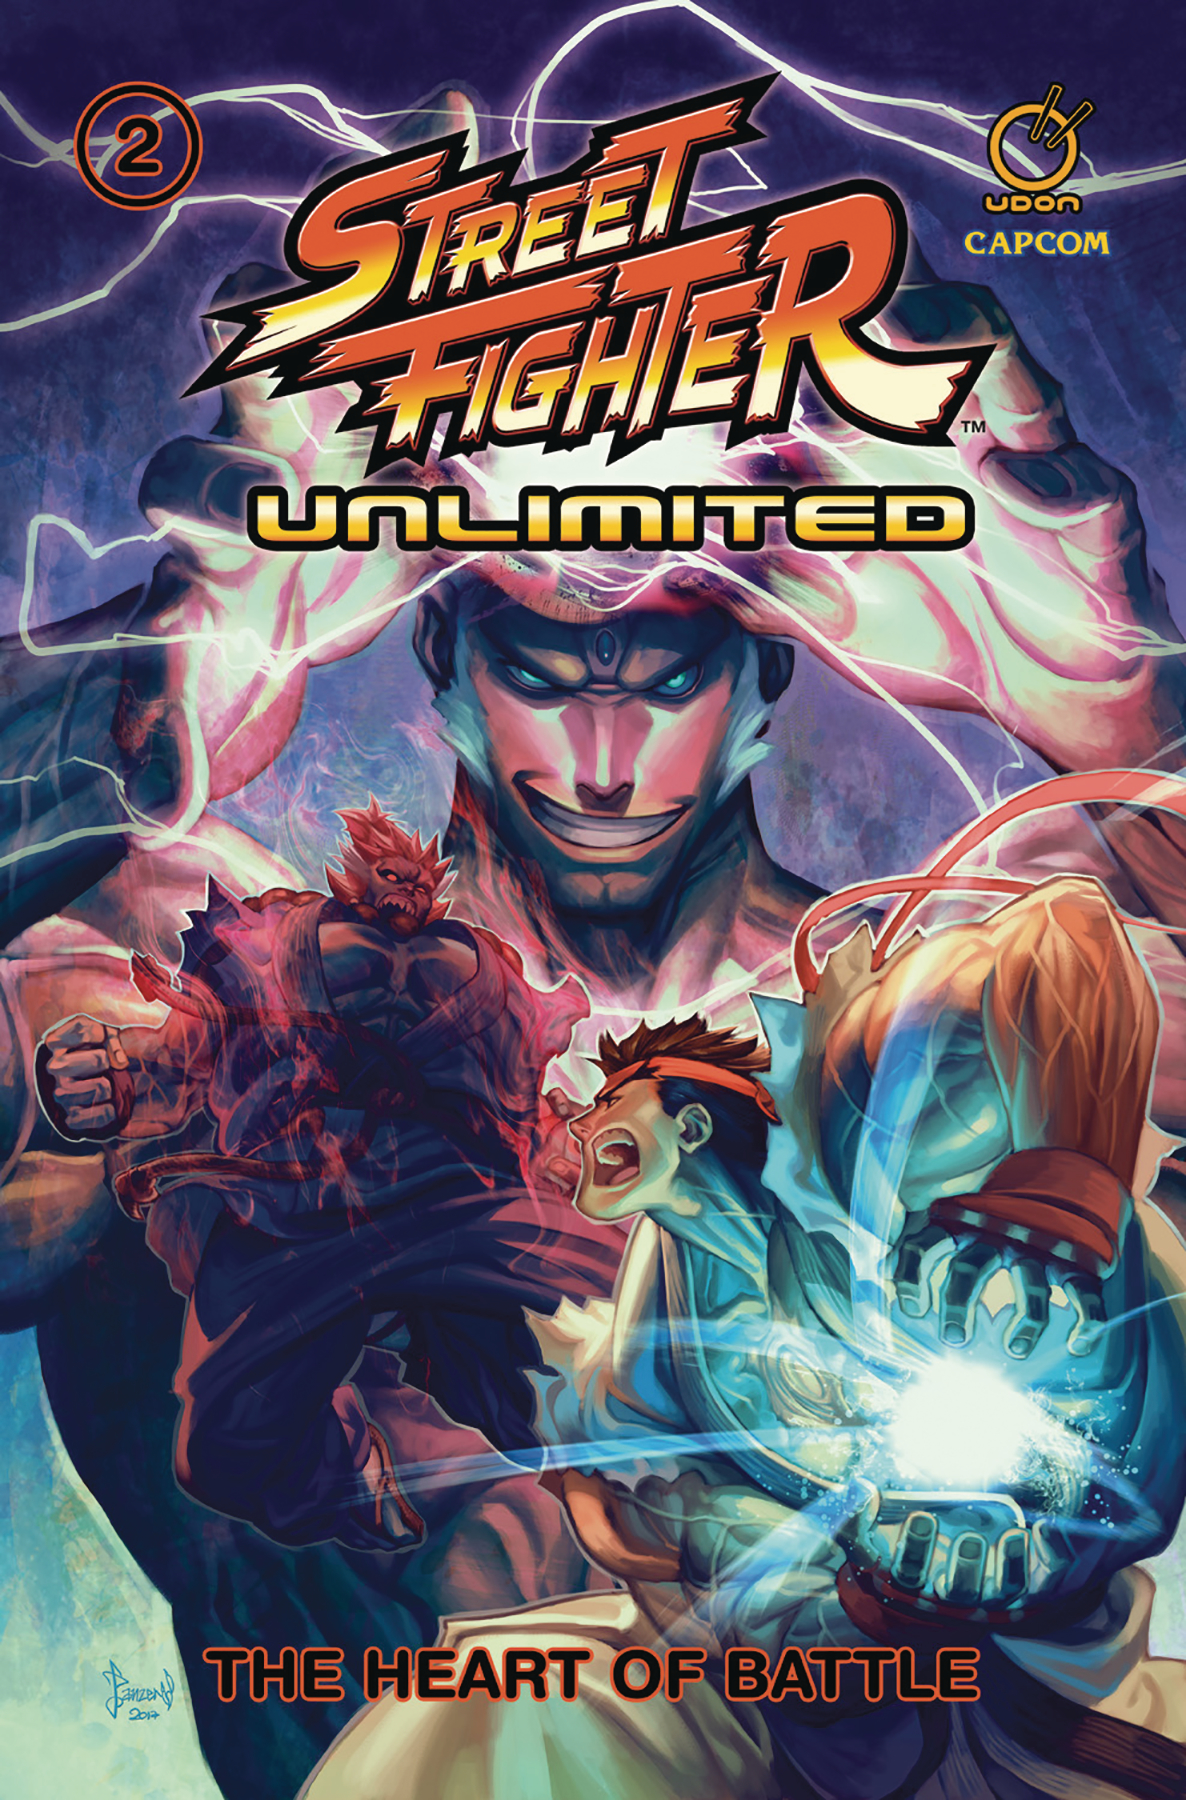 STREET FIGHTER UNLIMITED TP VOL 02